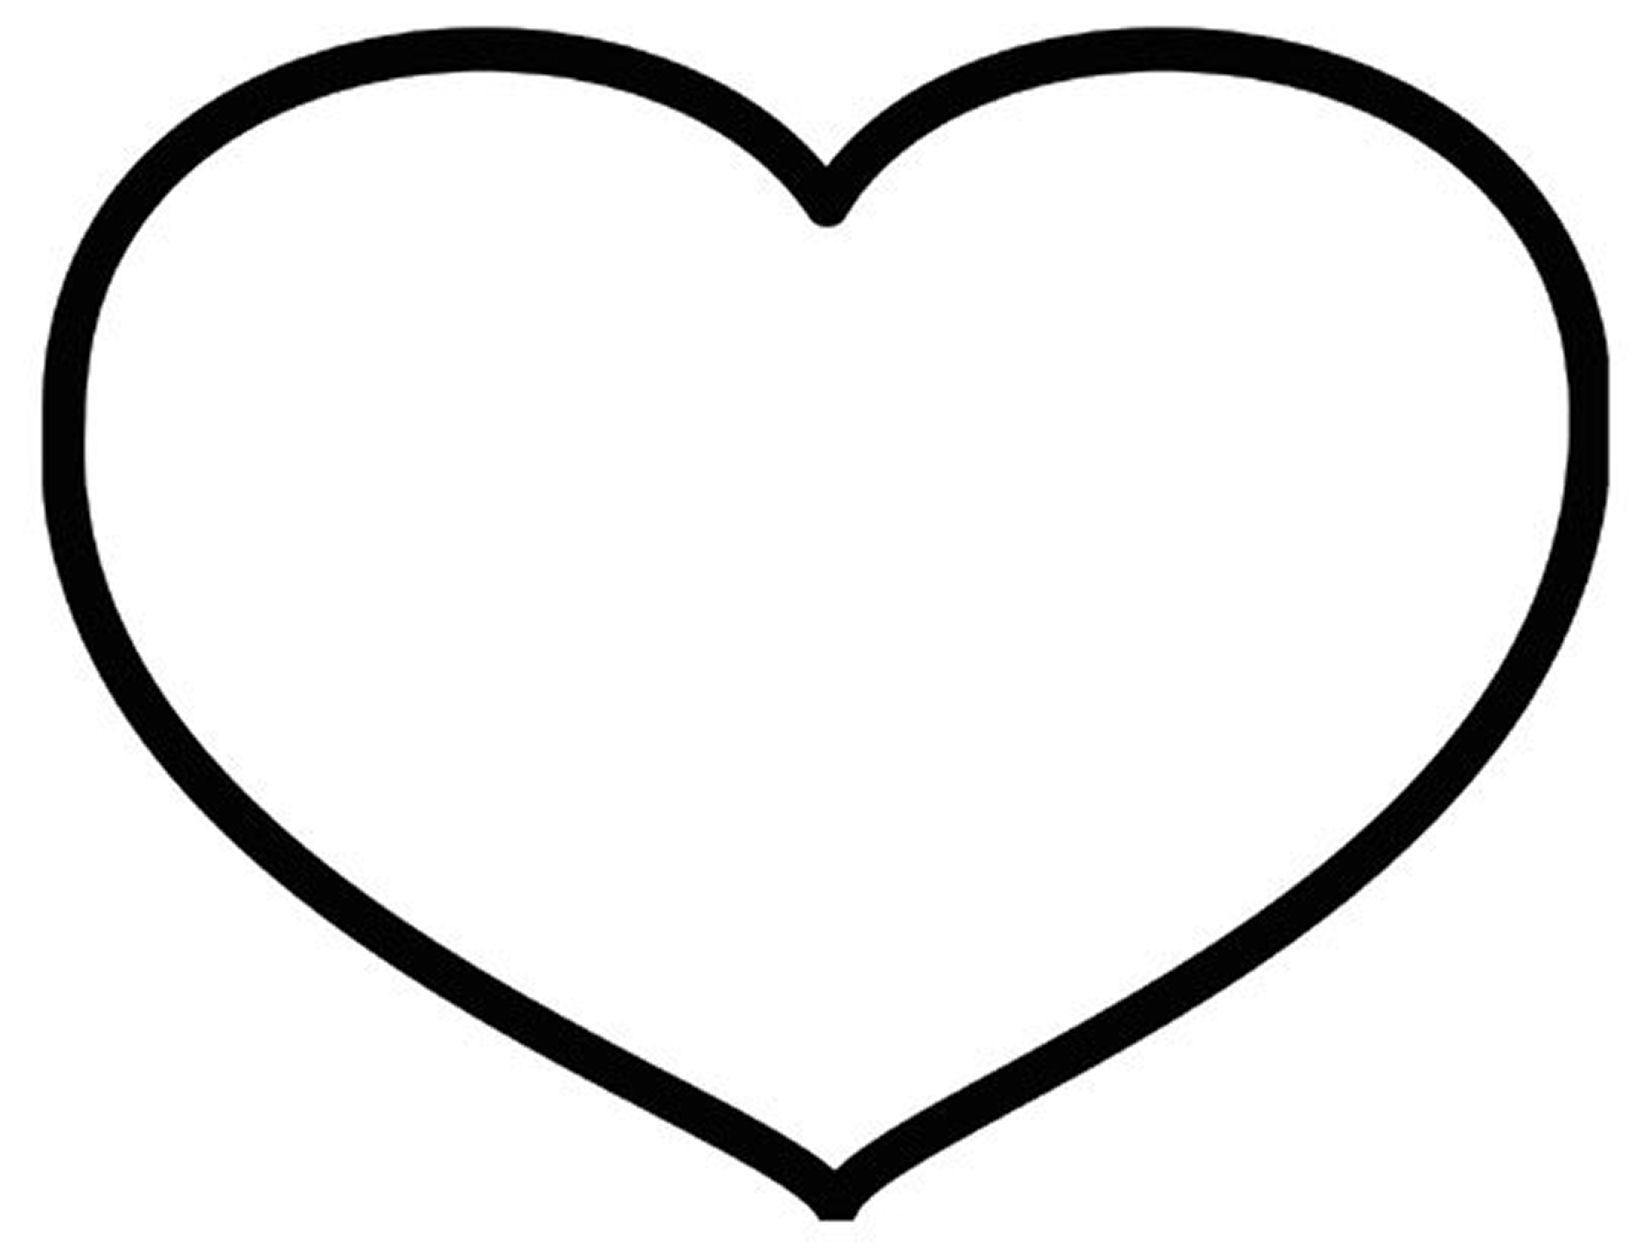 heart clipart coloring page heart coloring pages free download on clipartmag page coloring clipart heart